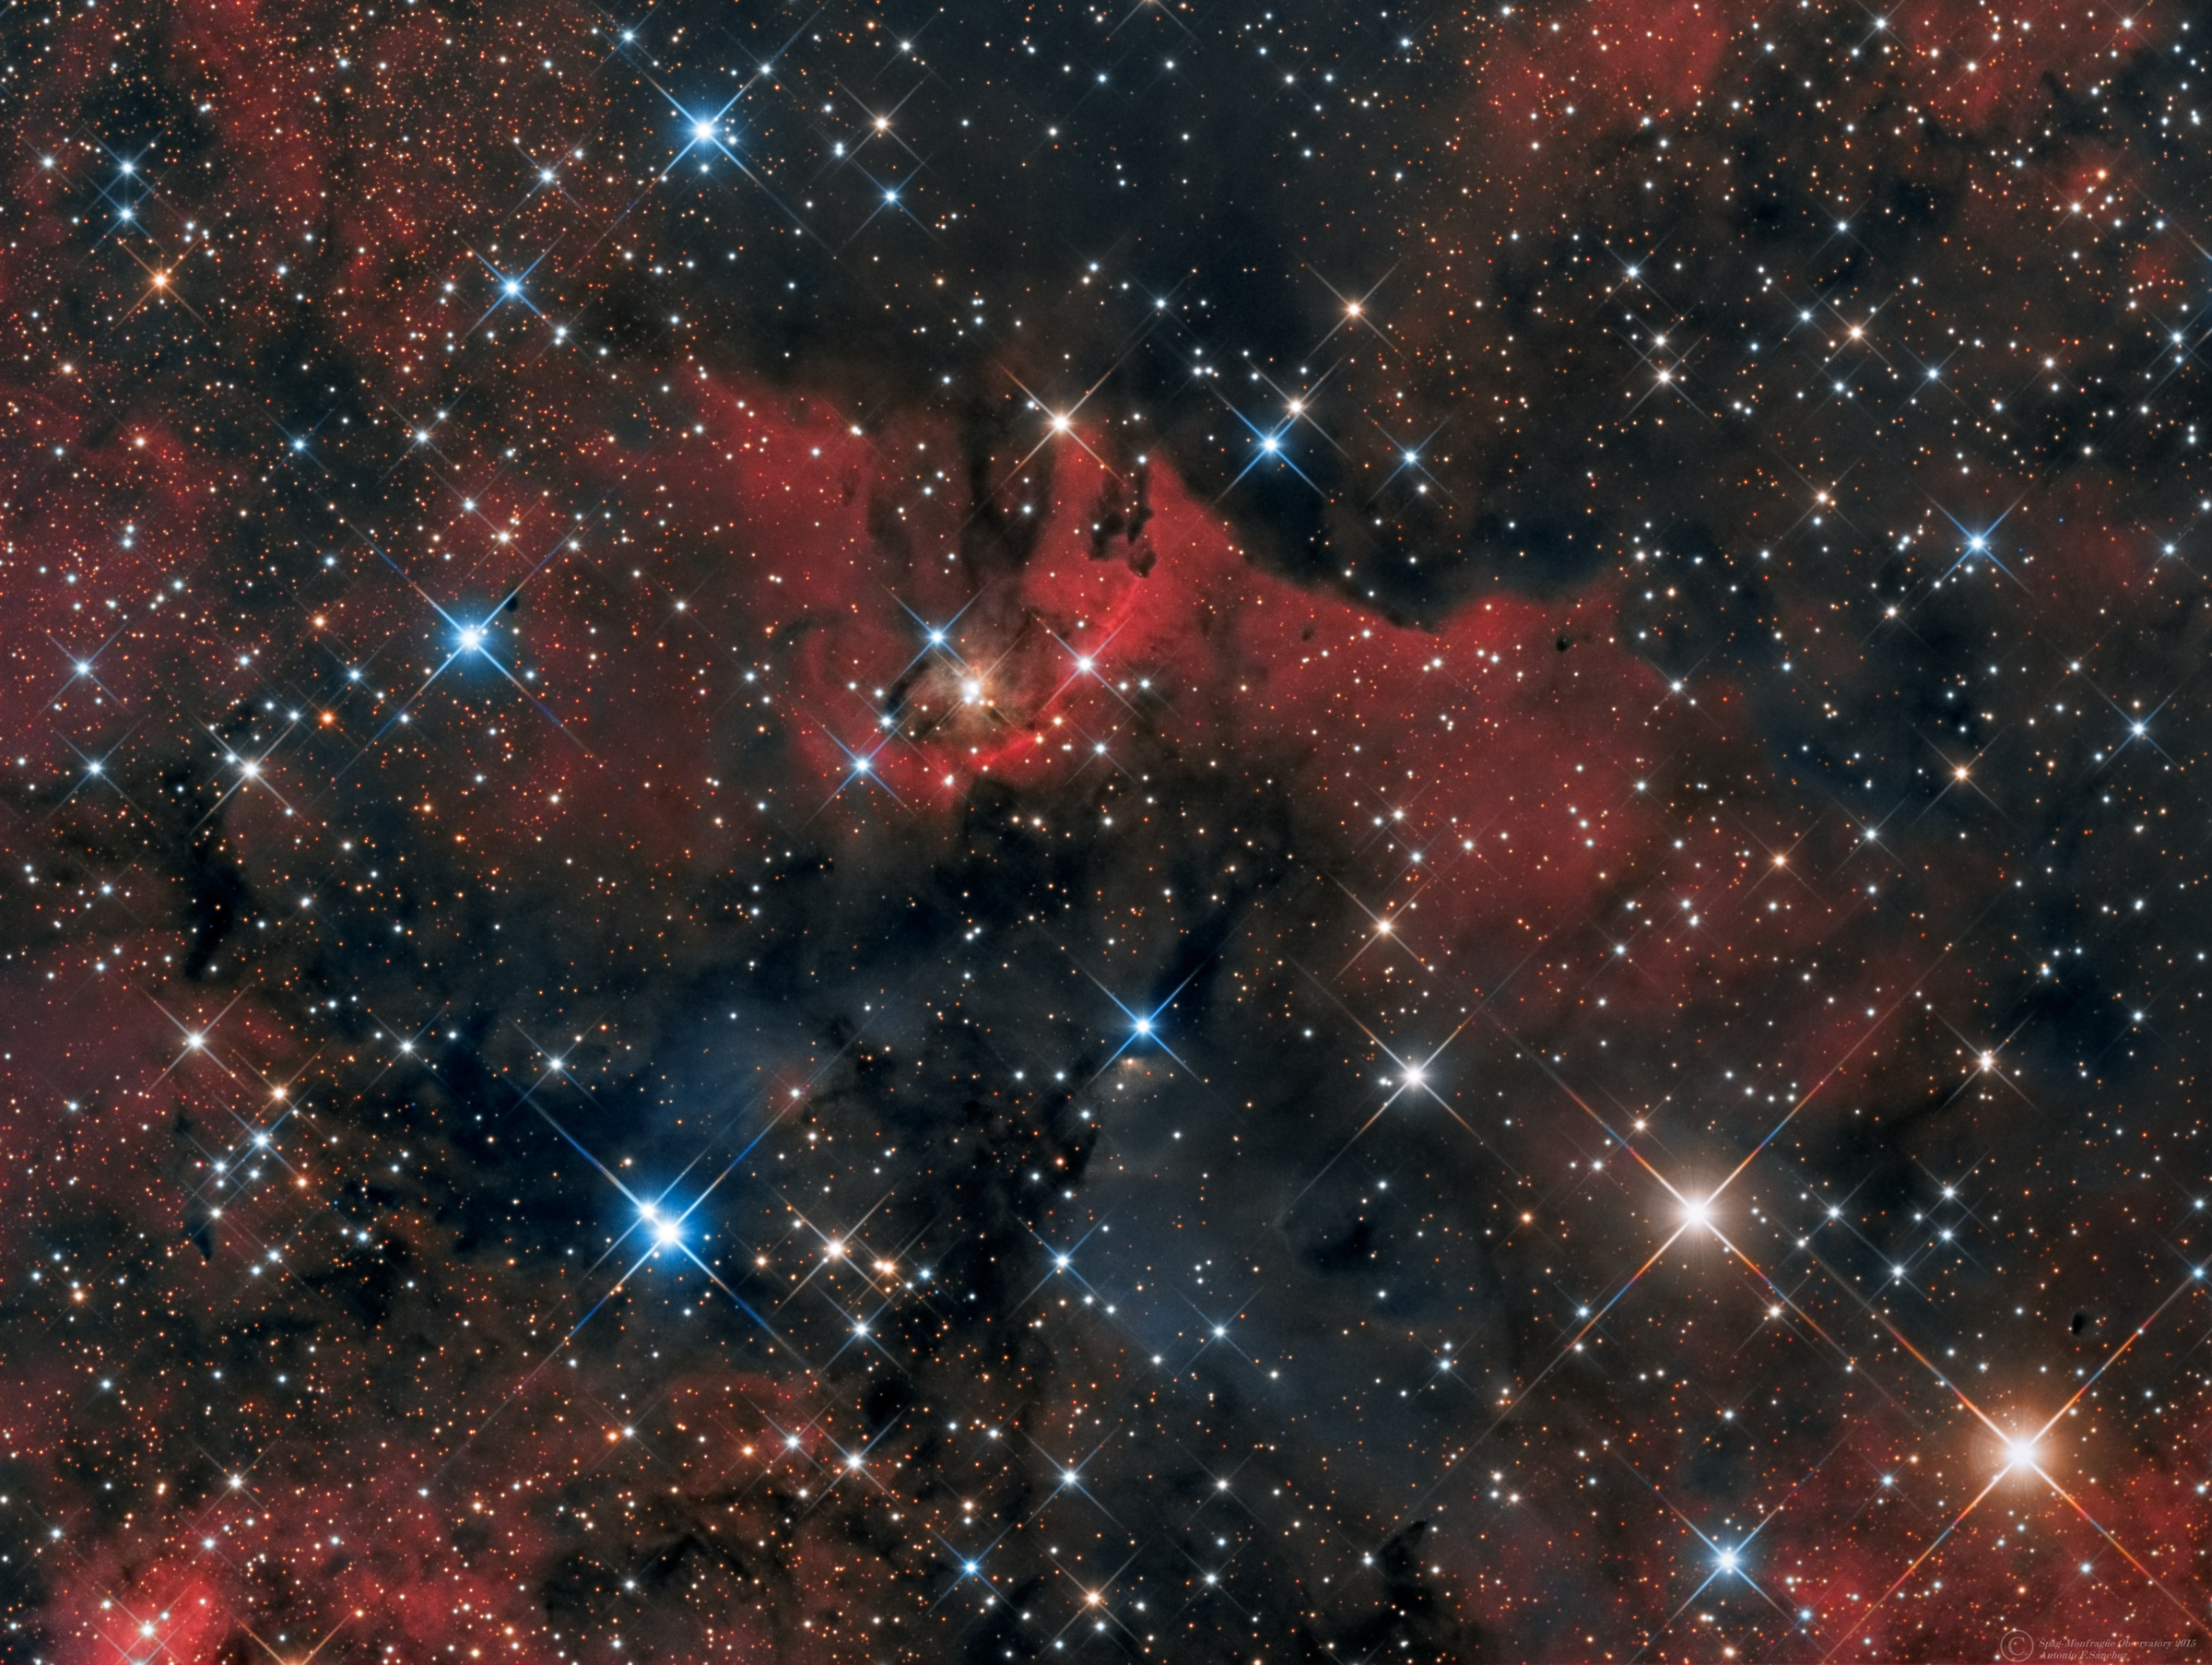 "LBN 248, HH425 (Cygnus).jpg - LBN 248,Herbig-Haro 425 (Cygnus) * August 2015 * ASA N12 astrograph (f/3.6, 1078mm) * DDM85 ASA mount * FLI ML8300 * LRB Optec filter set * L:410m R:170m G:160m B:200m * Unguided * Herbig–Haro (HH) objects are small patches of nebulosity associated with newly born stars, and are formed when narrow jets of gas ejected by young stars collide with clouds of gas and dust nearby at speeds of several hundred kilometres per second. Herbig–Haro objects are ubiquitous in star-forming regions, and several are often seen around a single star, aligned with its rotational axis.HH objects are transient phenomena, lasting not more than a few thousand years. They can evolve visibly over quite short astronomical timescales as they move rapidly away from their parent star into the gas clouds of interstellar space (the interstellar medium or ISM). Hubble Space Telescope observations have revealed the complex evolution of HH objects over the period of a few years, as parts of the nebula fade while others brighten as they collide with clumpy material of the interstellar medium.The objects were first observed in the late 19th century by Sherburne Wesley Burnham, but were not recognised as being a distinct type of emission nebula until the 1940s. The first astronomers to study them in detail were George Herbig and Guillermo Haro, after whom they have been named. Herbig and Haro were working independently on studies of star formation when they first analysed the objects, and recognised that they were a by-product of the star formation process.LBN 248 is a  very interesting and strange reflection nebula surrounding the low part of the photograph. This area is rarely  imaged. Thanks to Mr. Sakib Rasool for suggesting this target. .Information credits:  Reipurth B. (1999). ""A General Catalogue of Herbig–Haro Objects,"".Wikipedia."